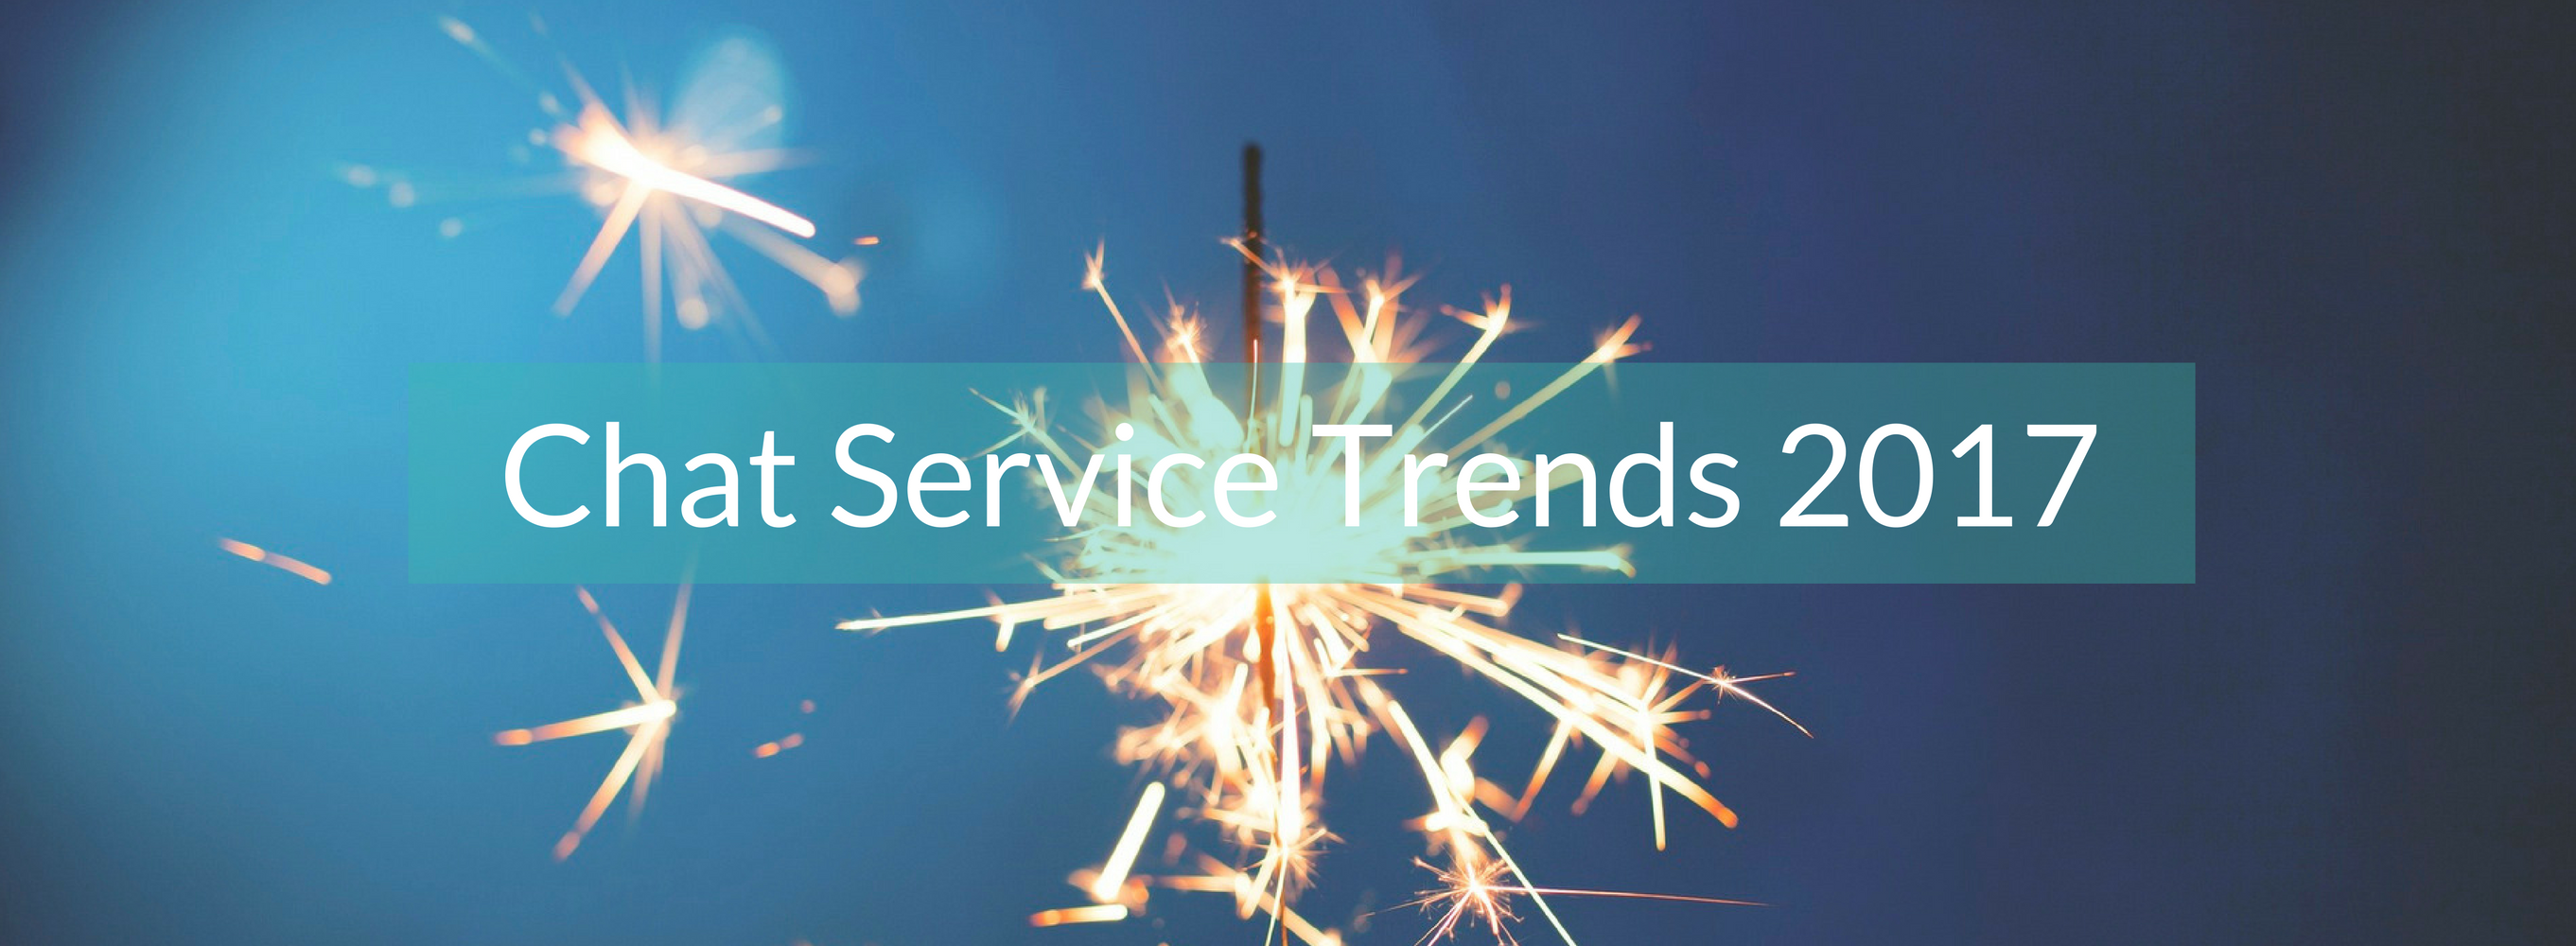 chat-service-trends-2017